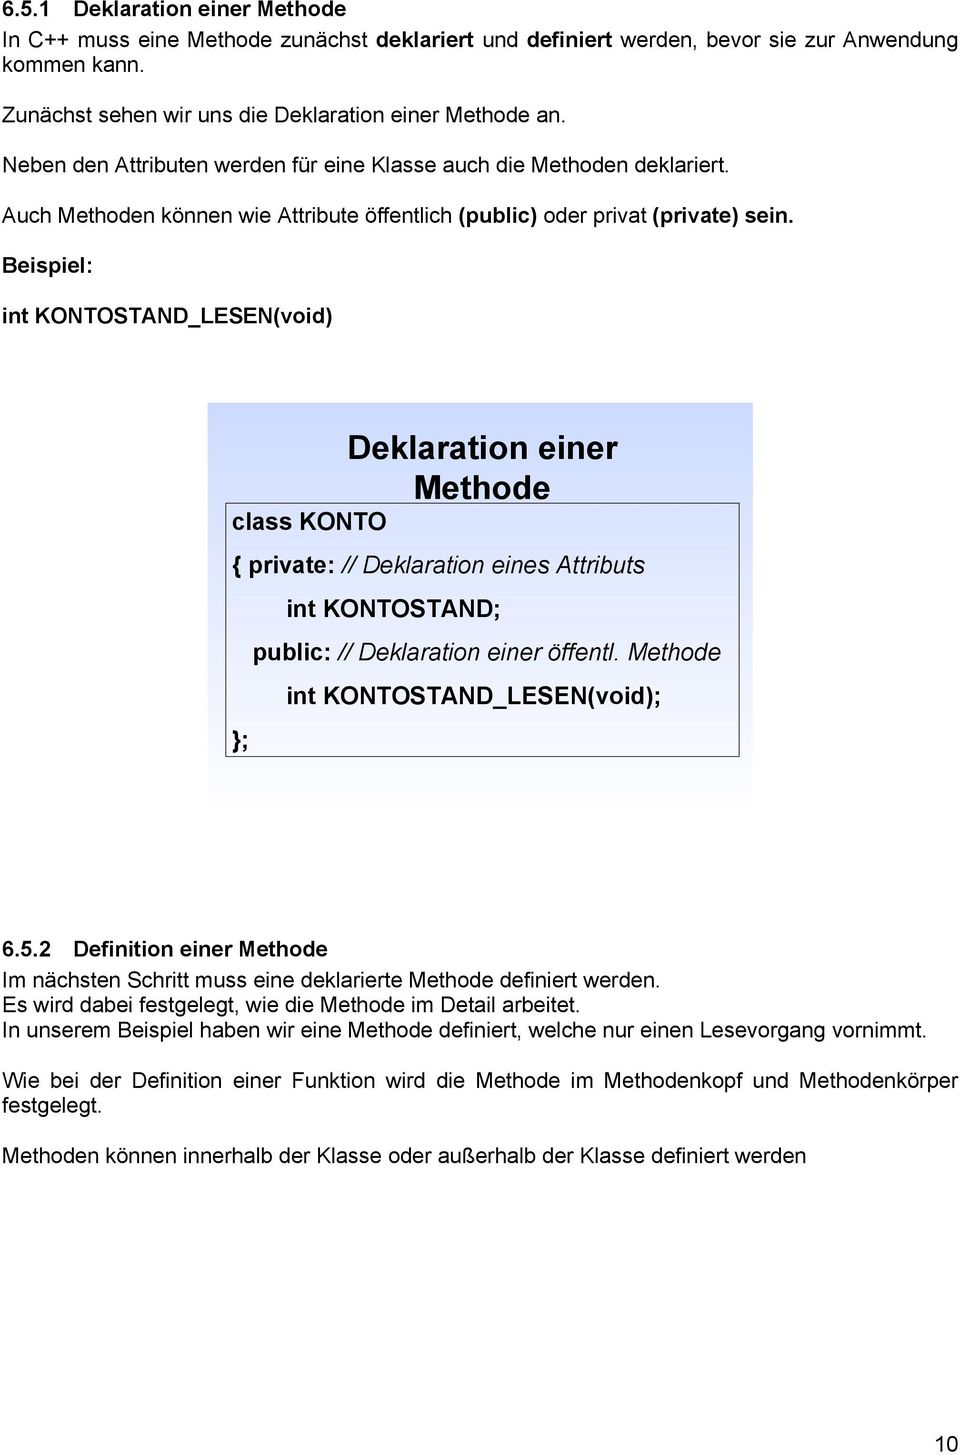 Beispiel: int KONTOSTAND_LESEN(void) Deklaration einer Methode class KONTO private: // Deklaration eines Attributs public: // Deklaration einer öffentl. Methode int KONTOSTAND_LESEN(void); 6.5.